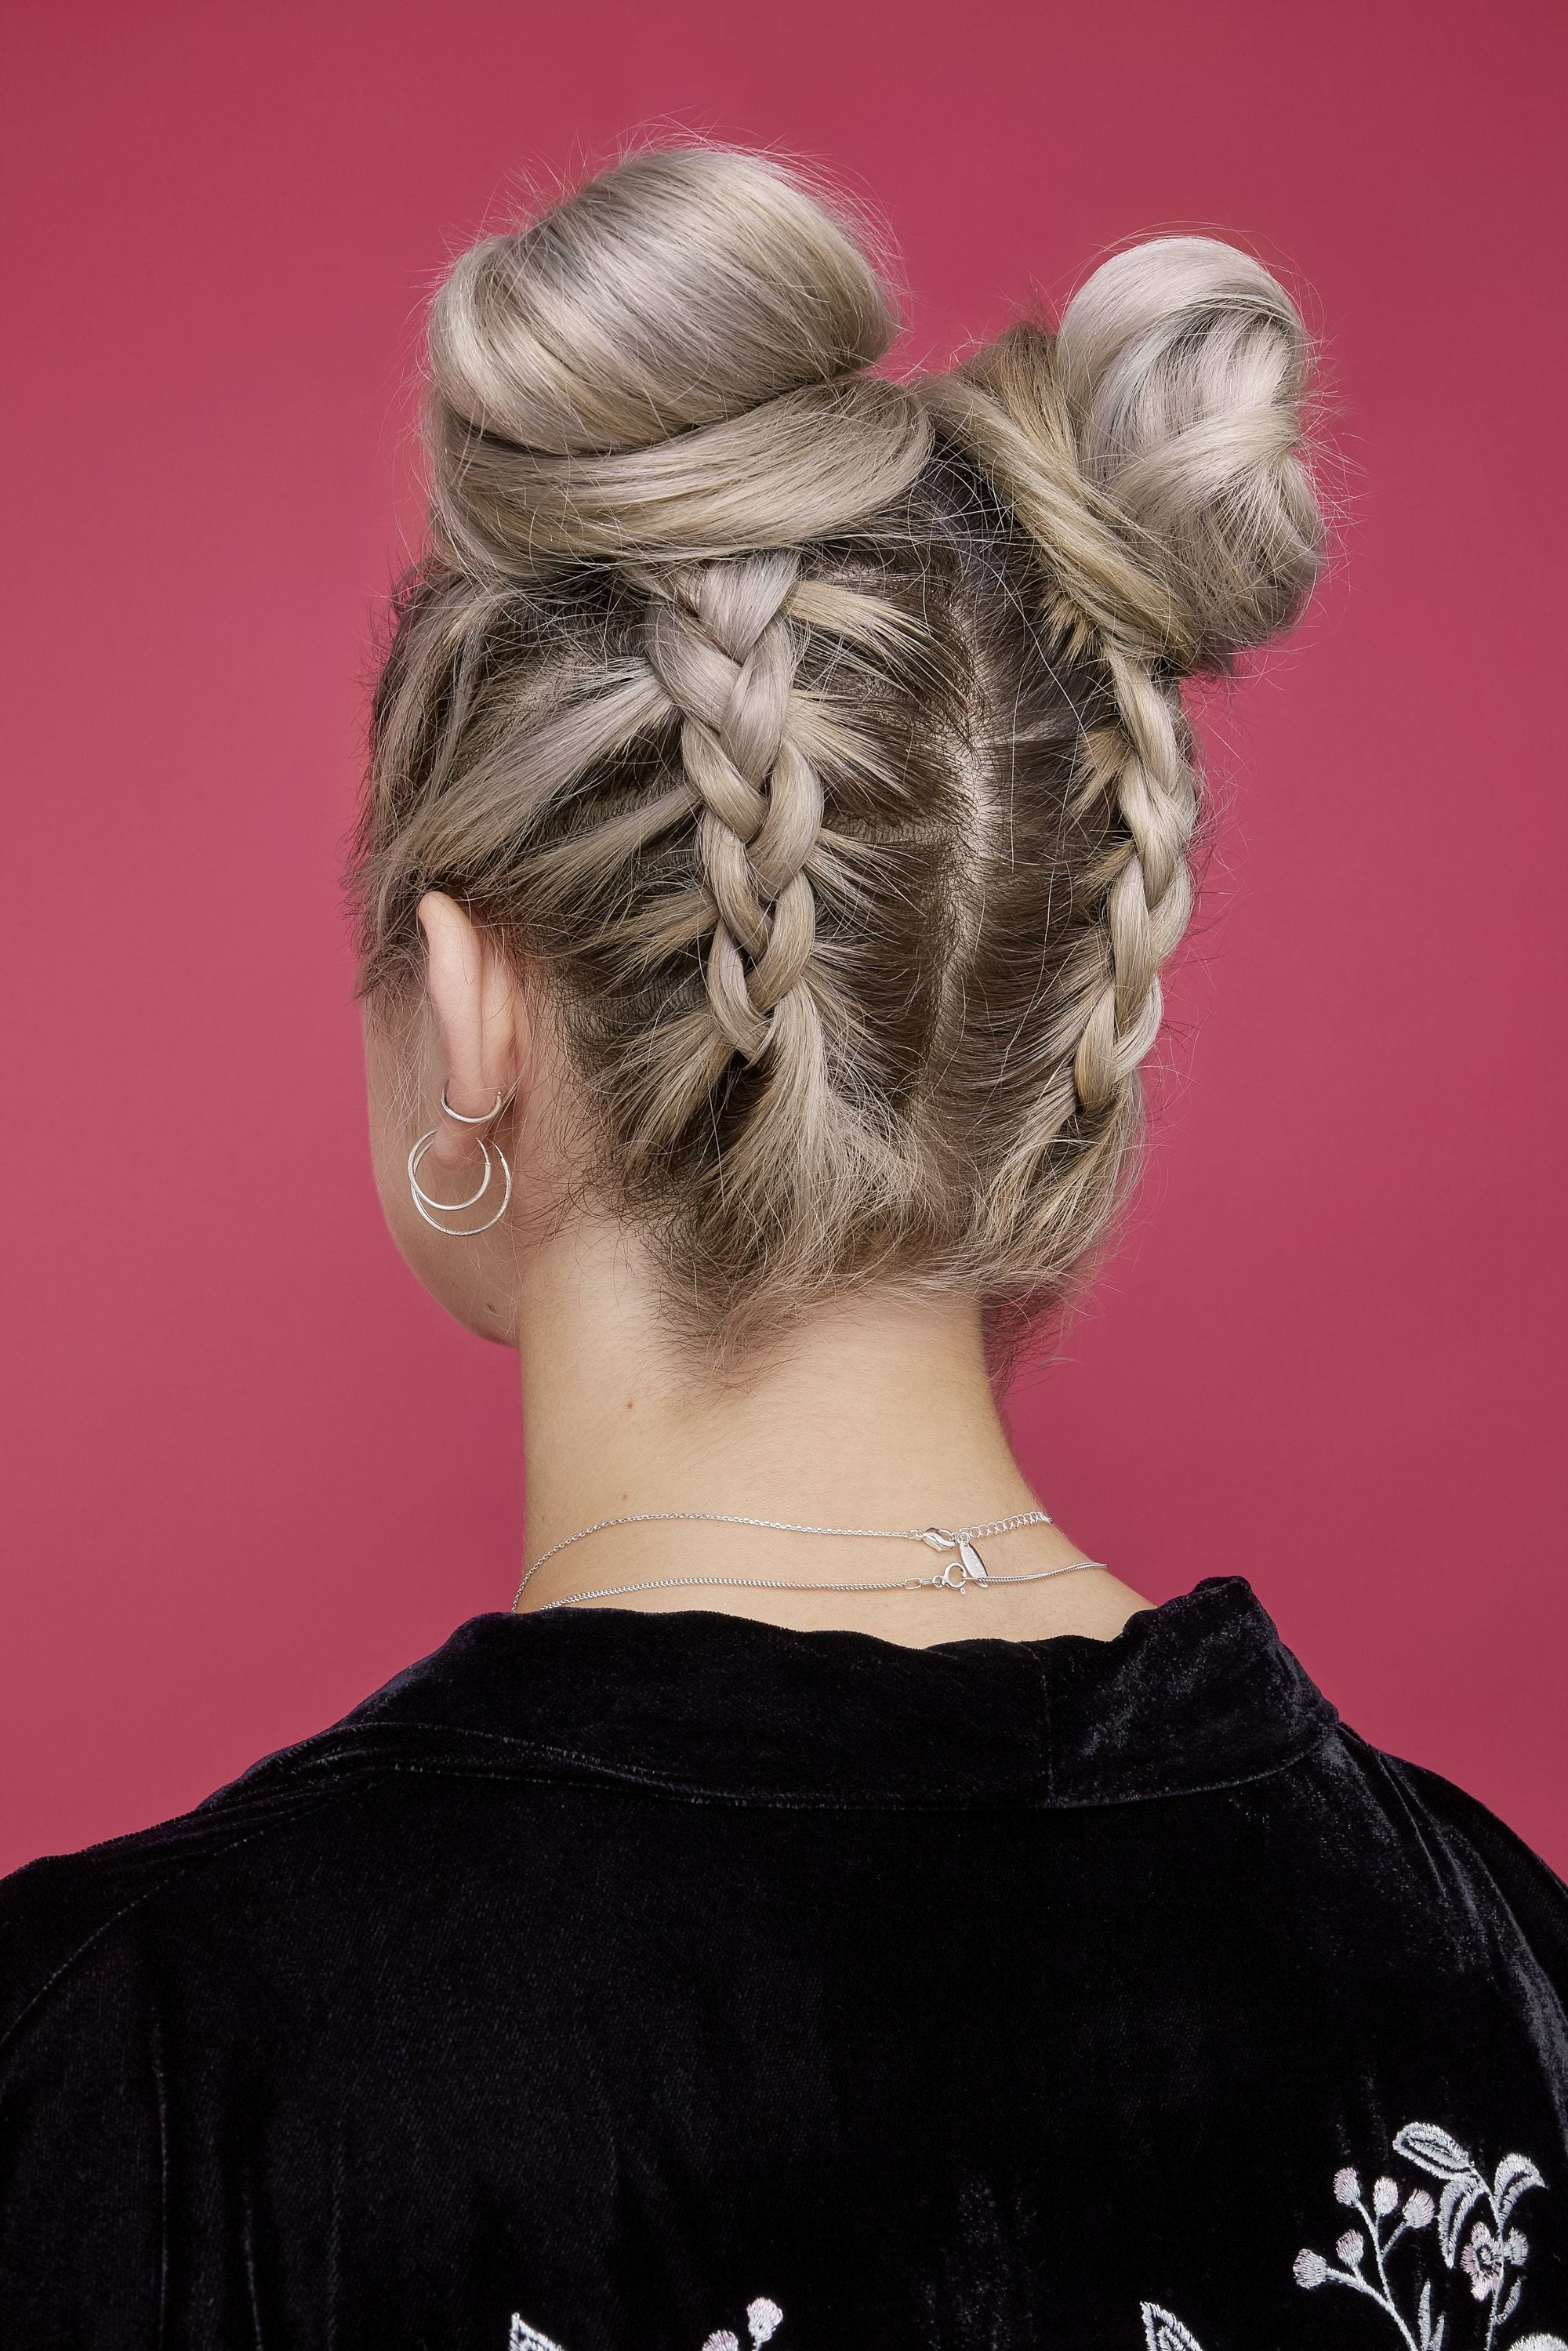 Most Up To Date Braided Space Buns Updo Hairstyles With 13 Easy And On Trend Bun Hairstyles For Every Occasion (View 9 of 20)